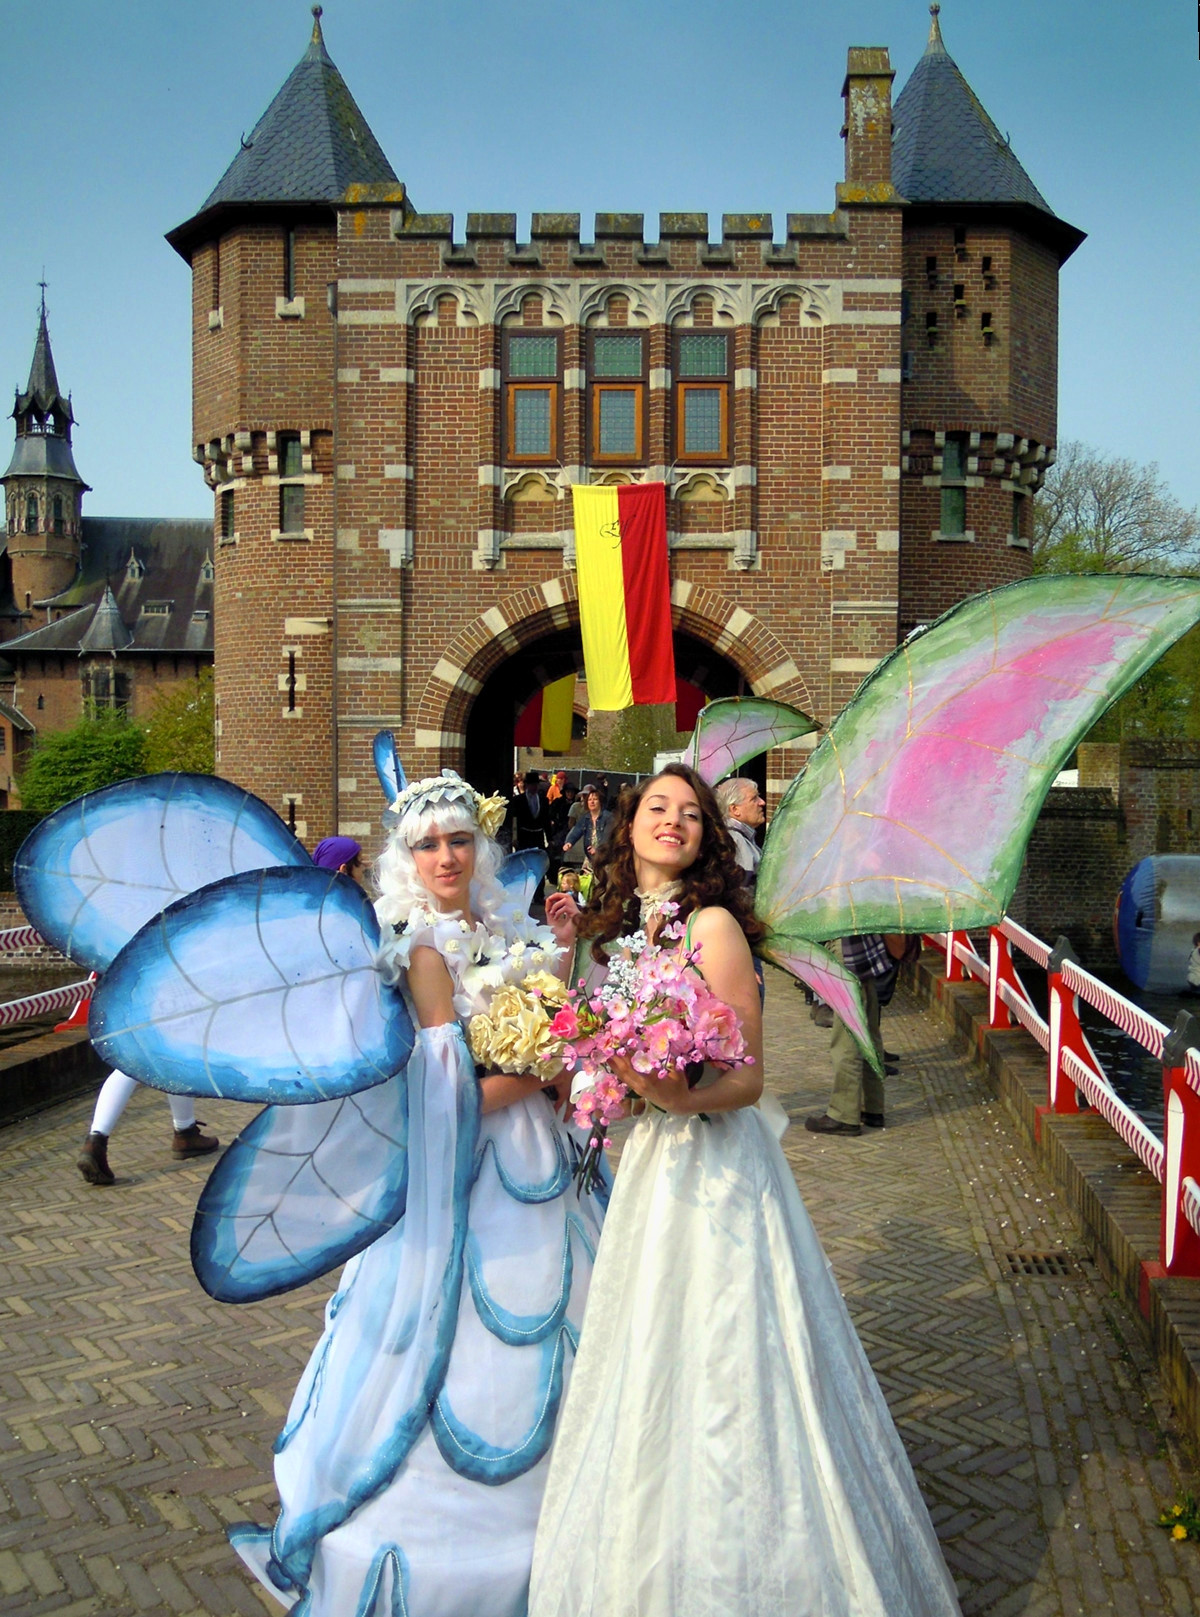 Two fairies at the Elf Fantasy Fair at Castle de Haar. Credit Juvarra